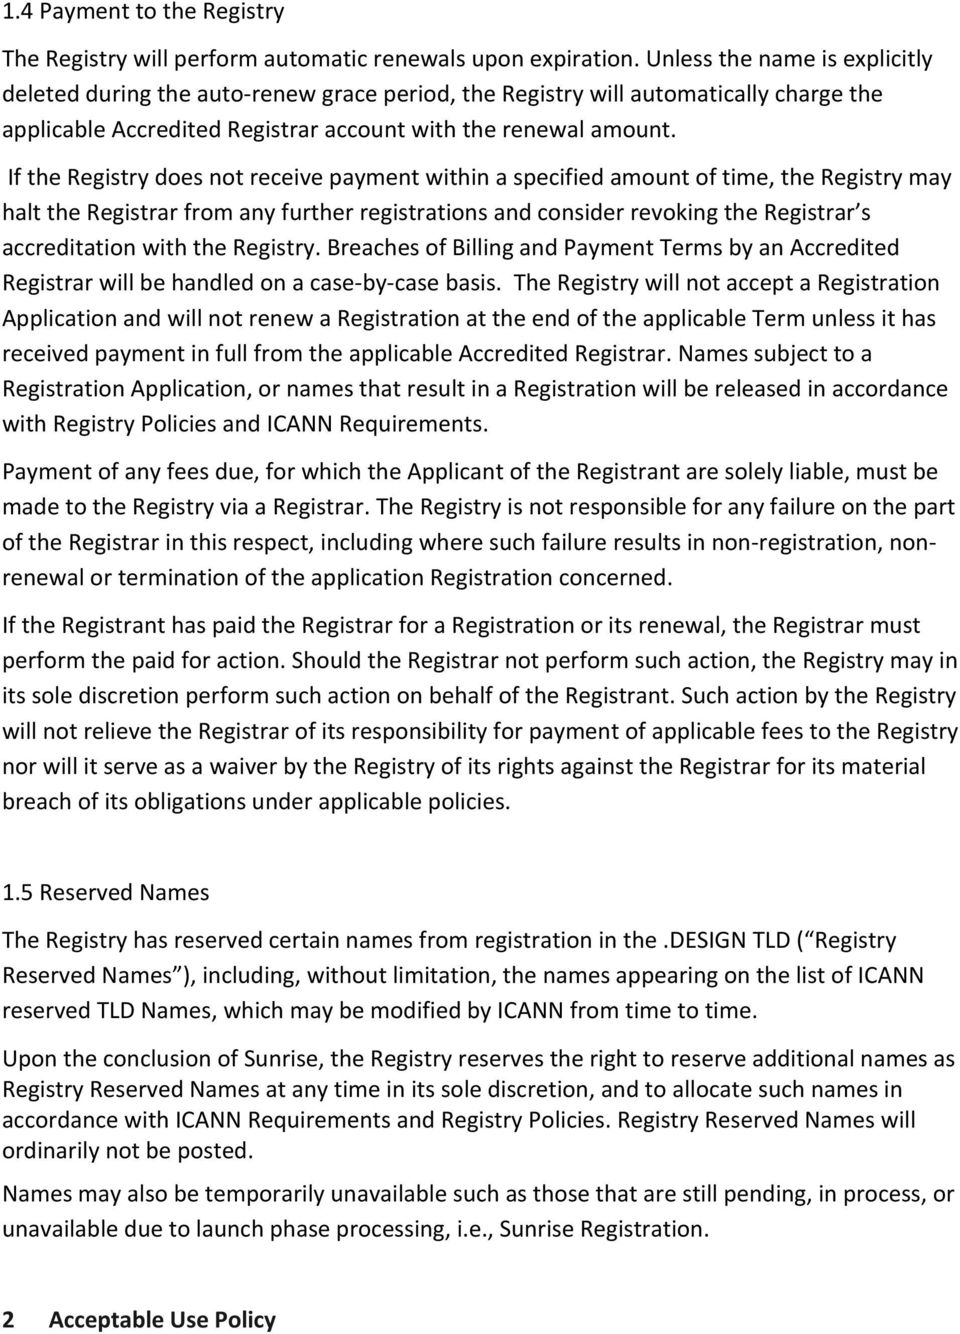 If the Registry does not receive payment within a specified amount of time, the Registry may halt the Registrar from any further registrations and consider revoking the Registrar s accreditation with